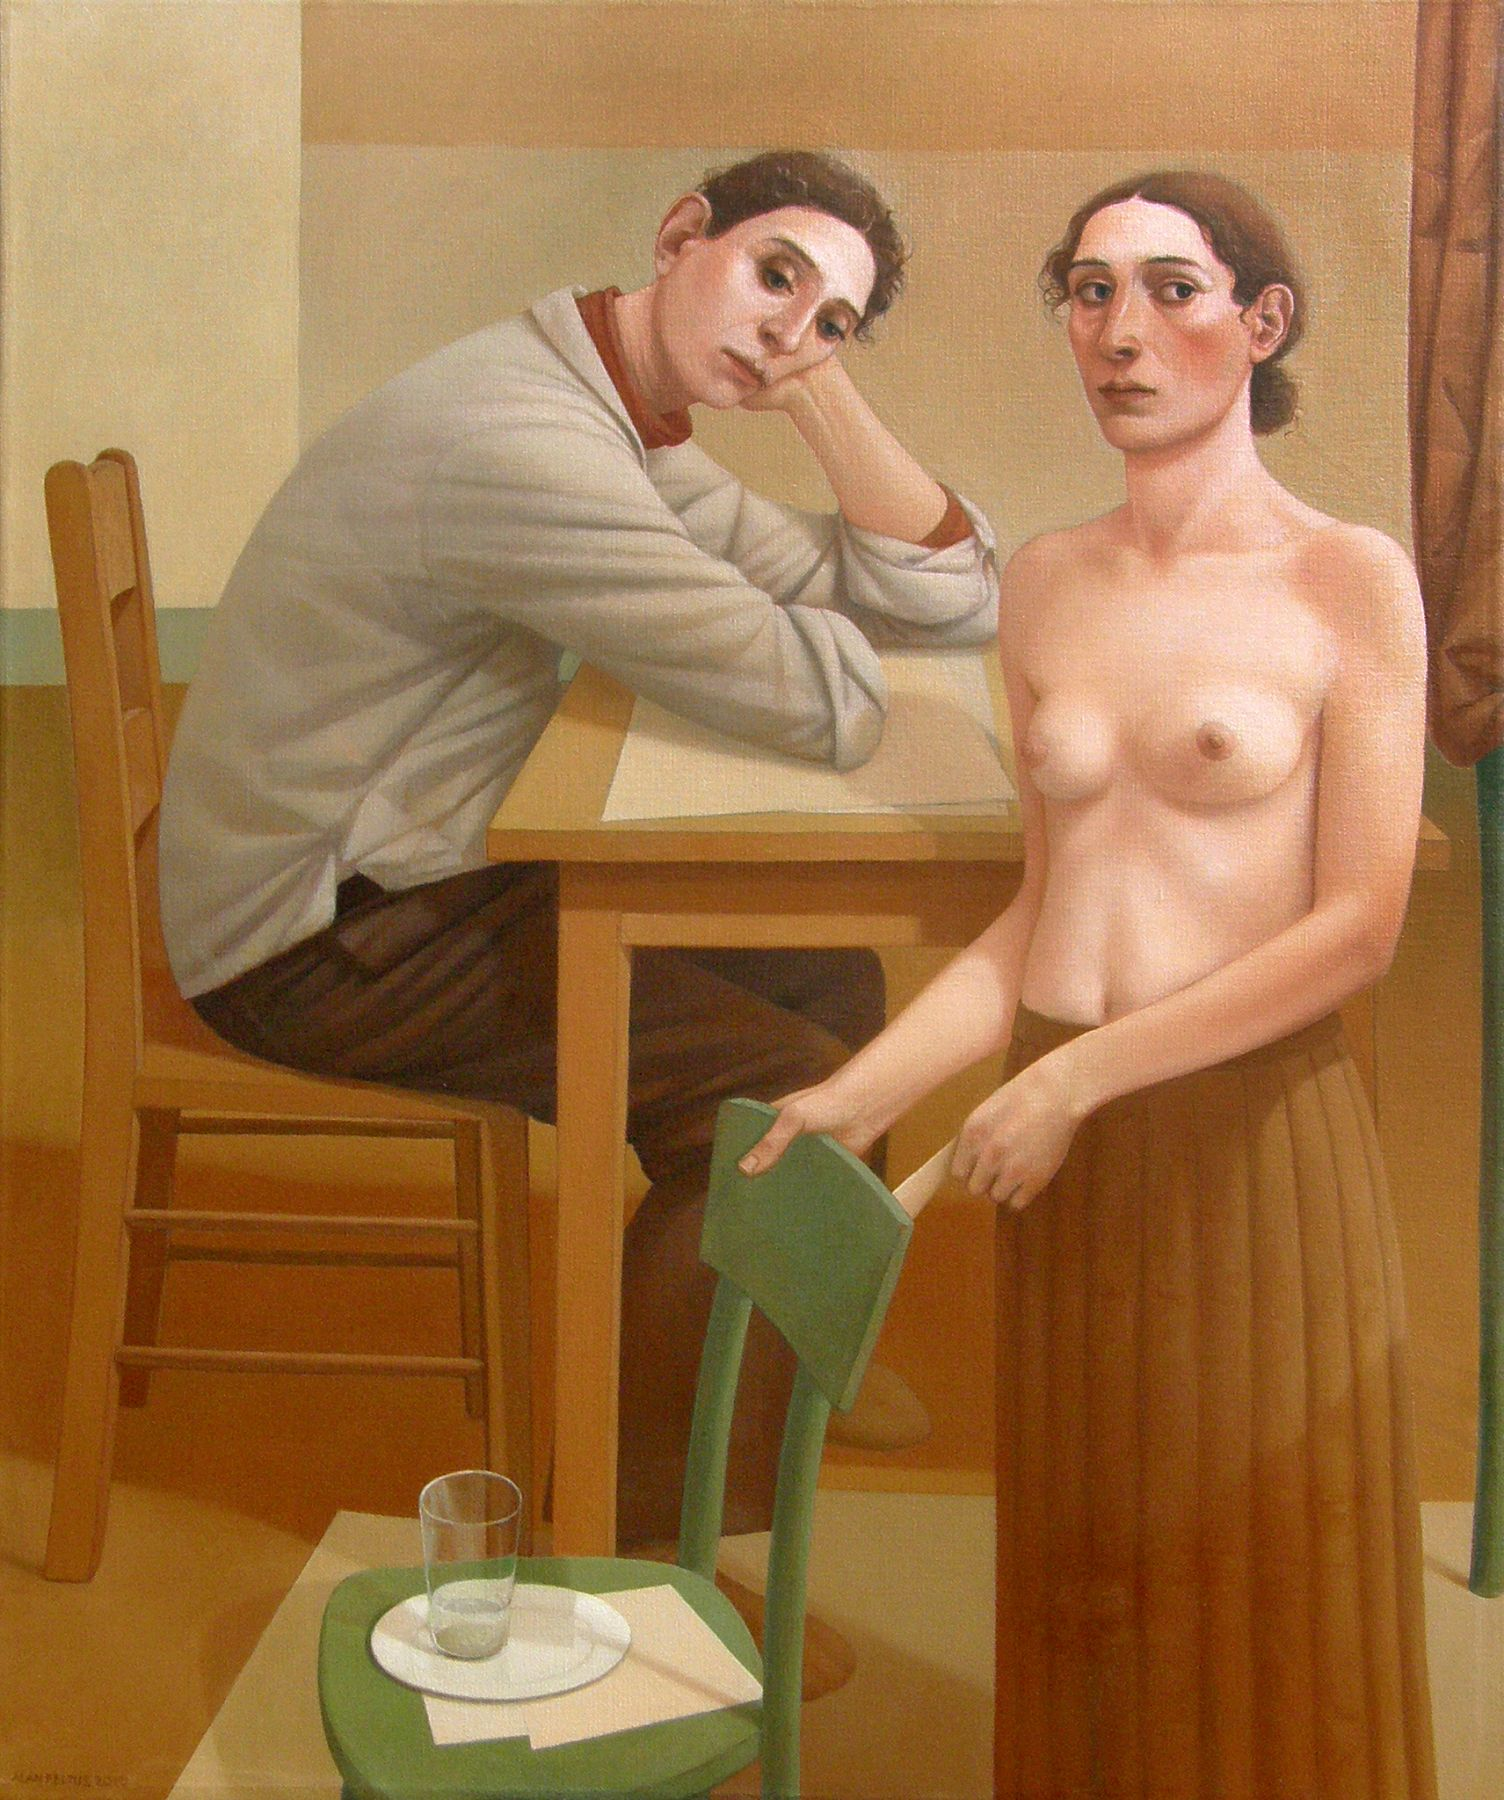 alan feltus, The Young Man and the Flower Lady, 2010, oil on linen, 48 x 39 7/8 inches